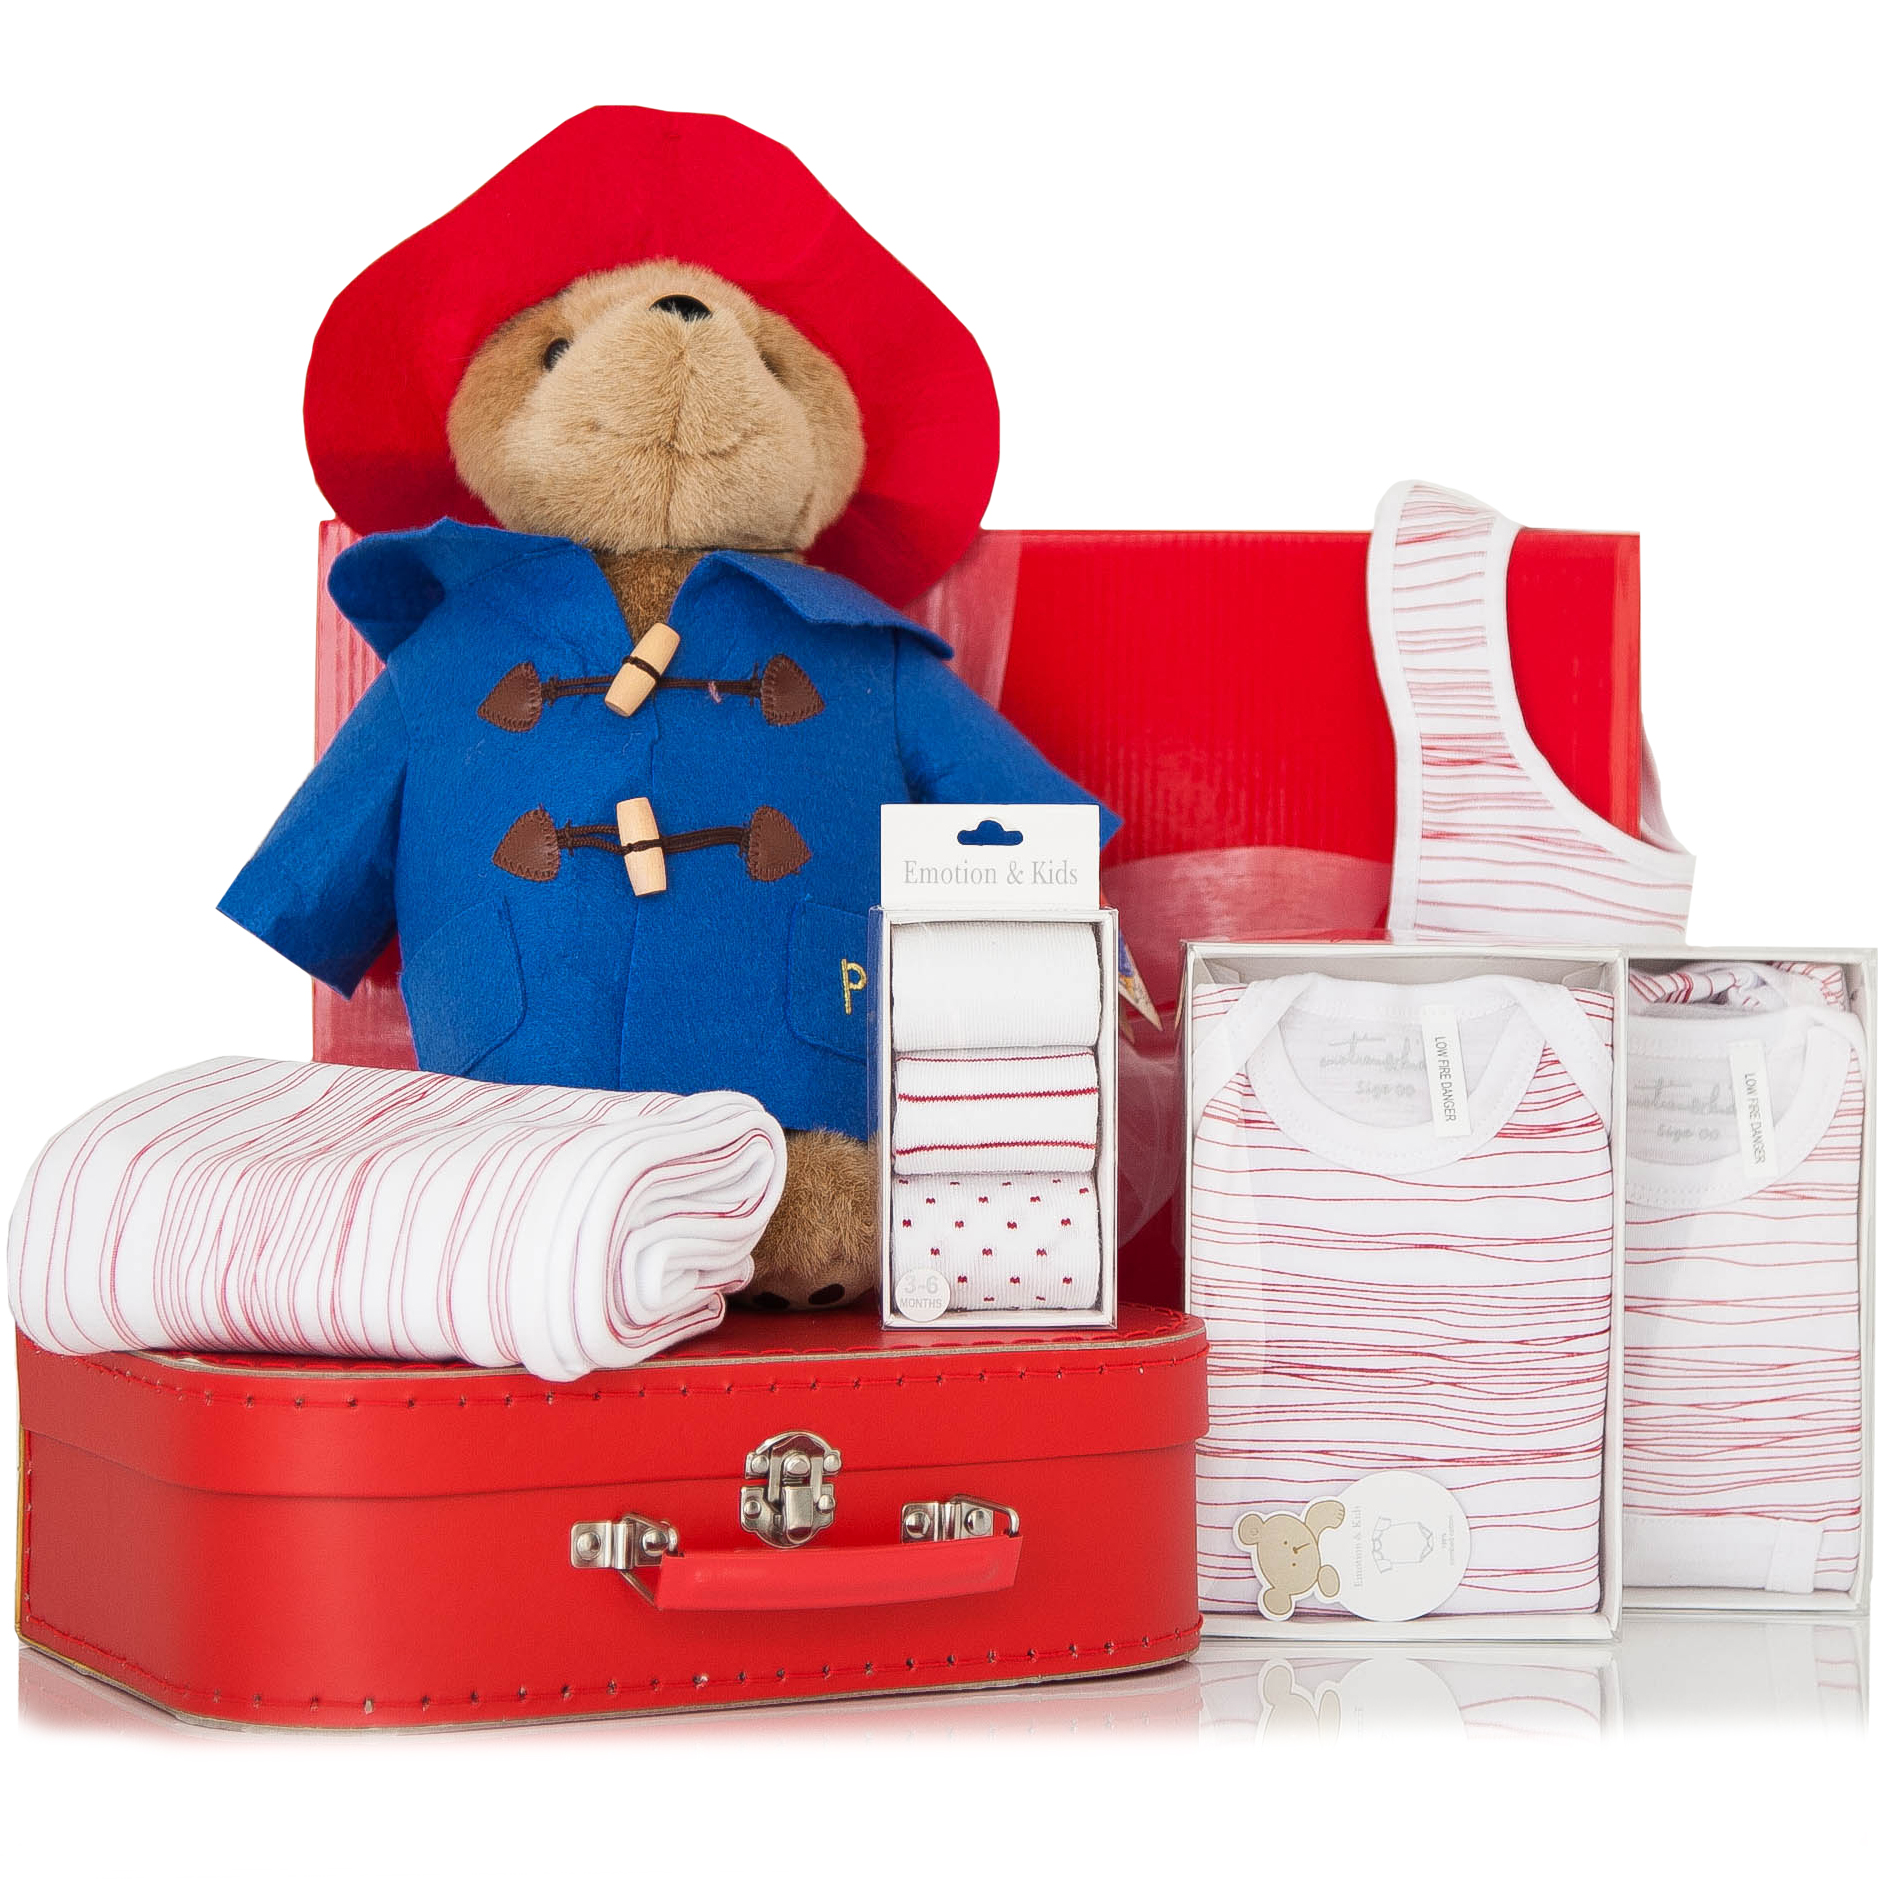 Baby Boy Gifts Melbourne : Gift wrapped up baby hamper paddington bear